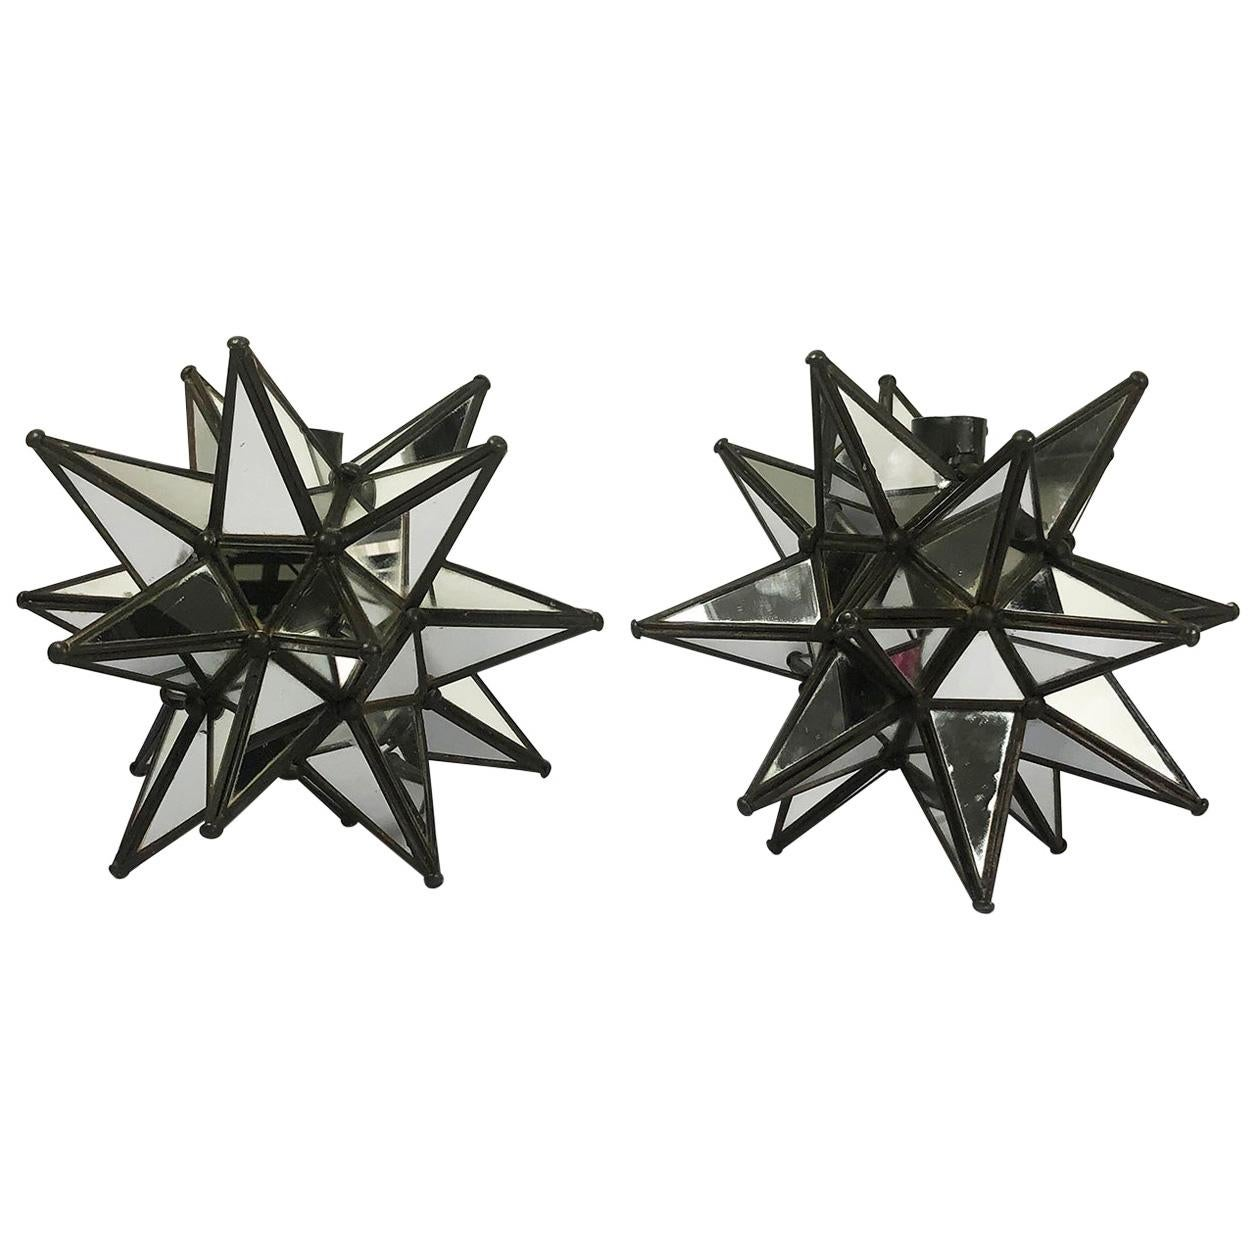 Mid-Century Modern Pair of Star-Shaped Candleholders with Embedded Mirrors